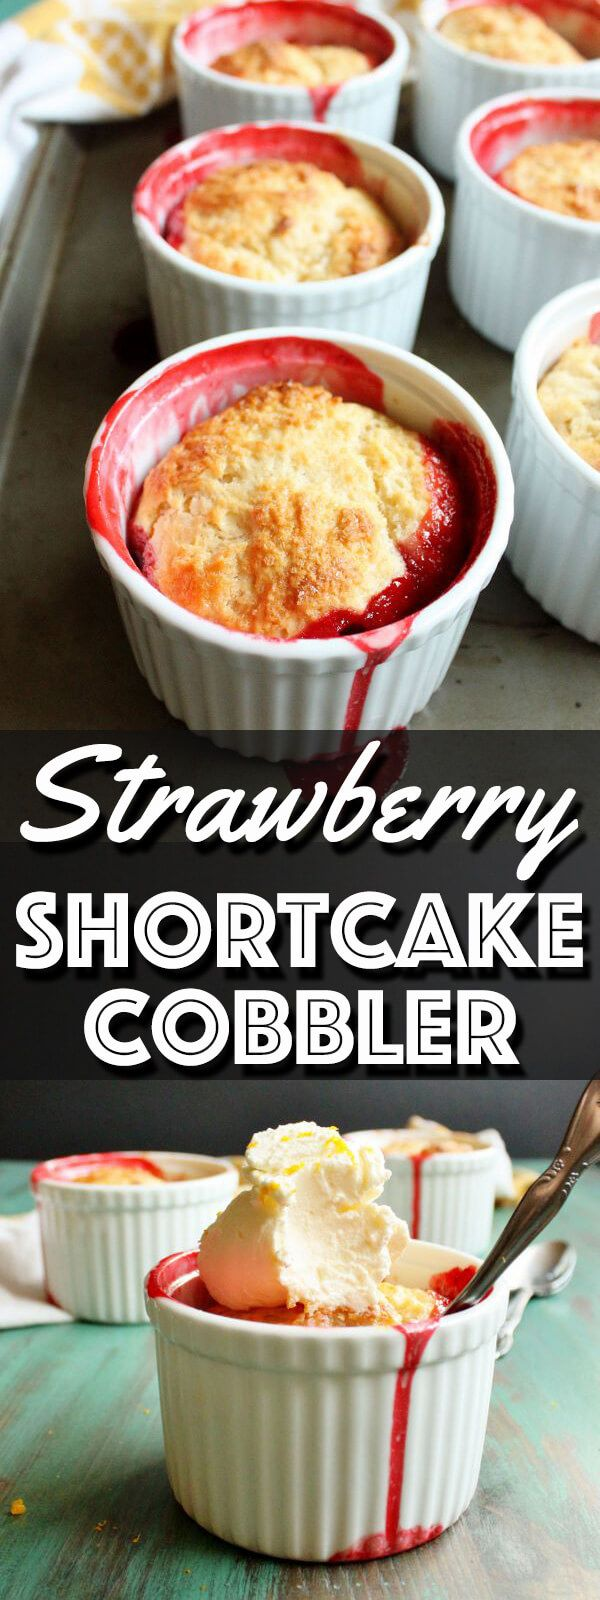 This Strawberry Shortcake Cobbler recipe makes a scrumptious strawberry dessert that is a hybrid of the beloved strawberry shortcake and a fruit cobbler. The small batch recipe makes just six individual serving size! | wildwildwhisk.com